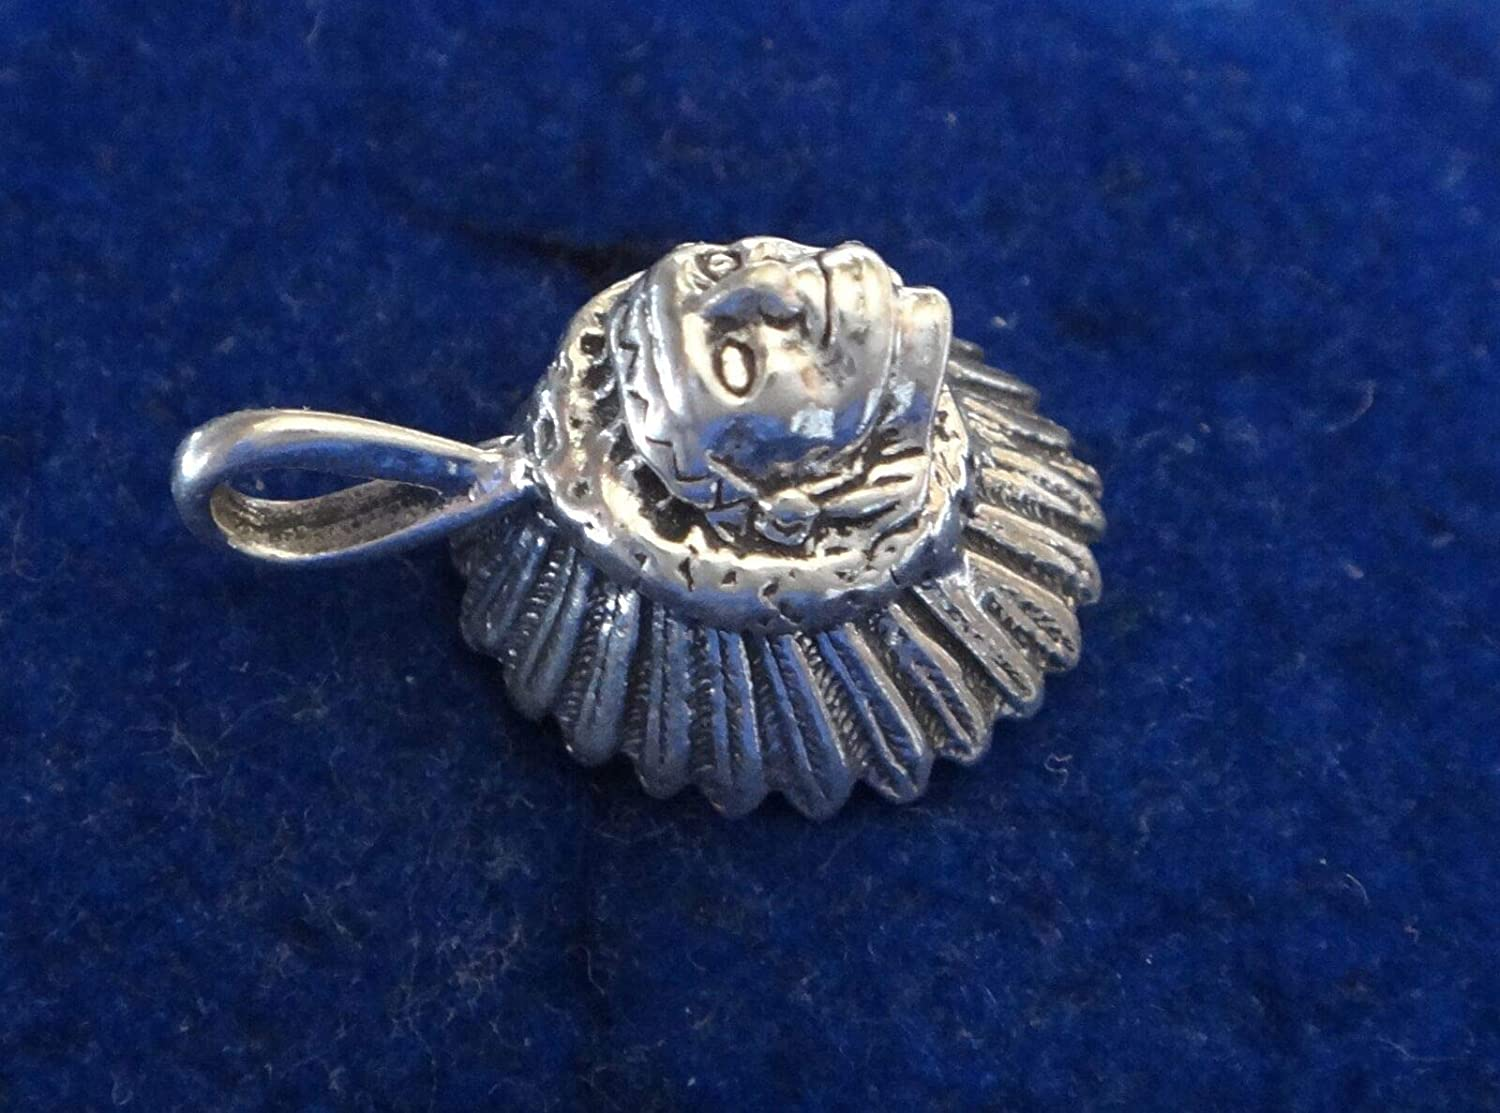 Fine Charms 1 Sterling Silver 3D 18x11mm Indian Chief with Headdress Hollow Back